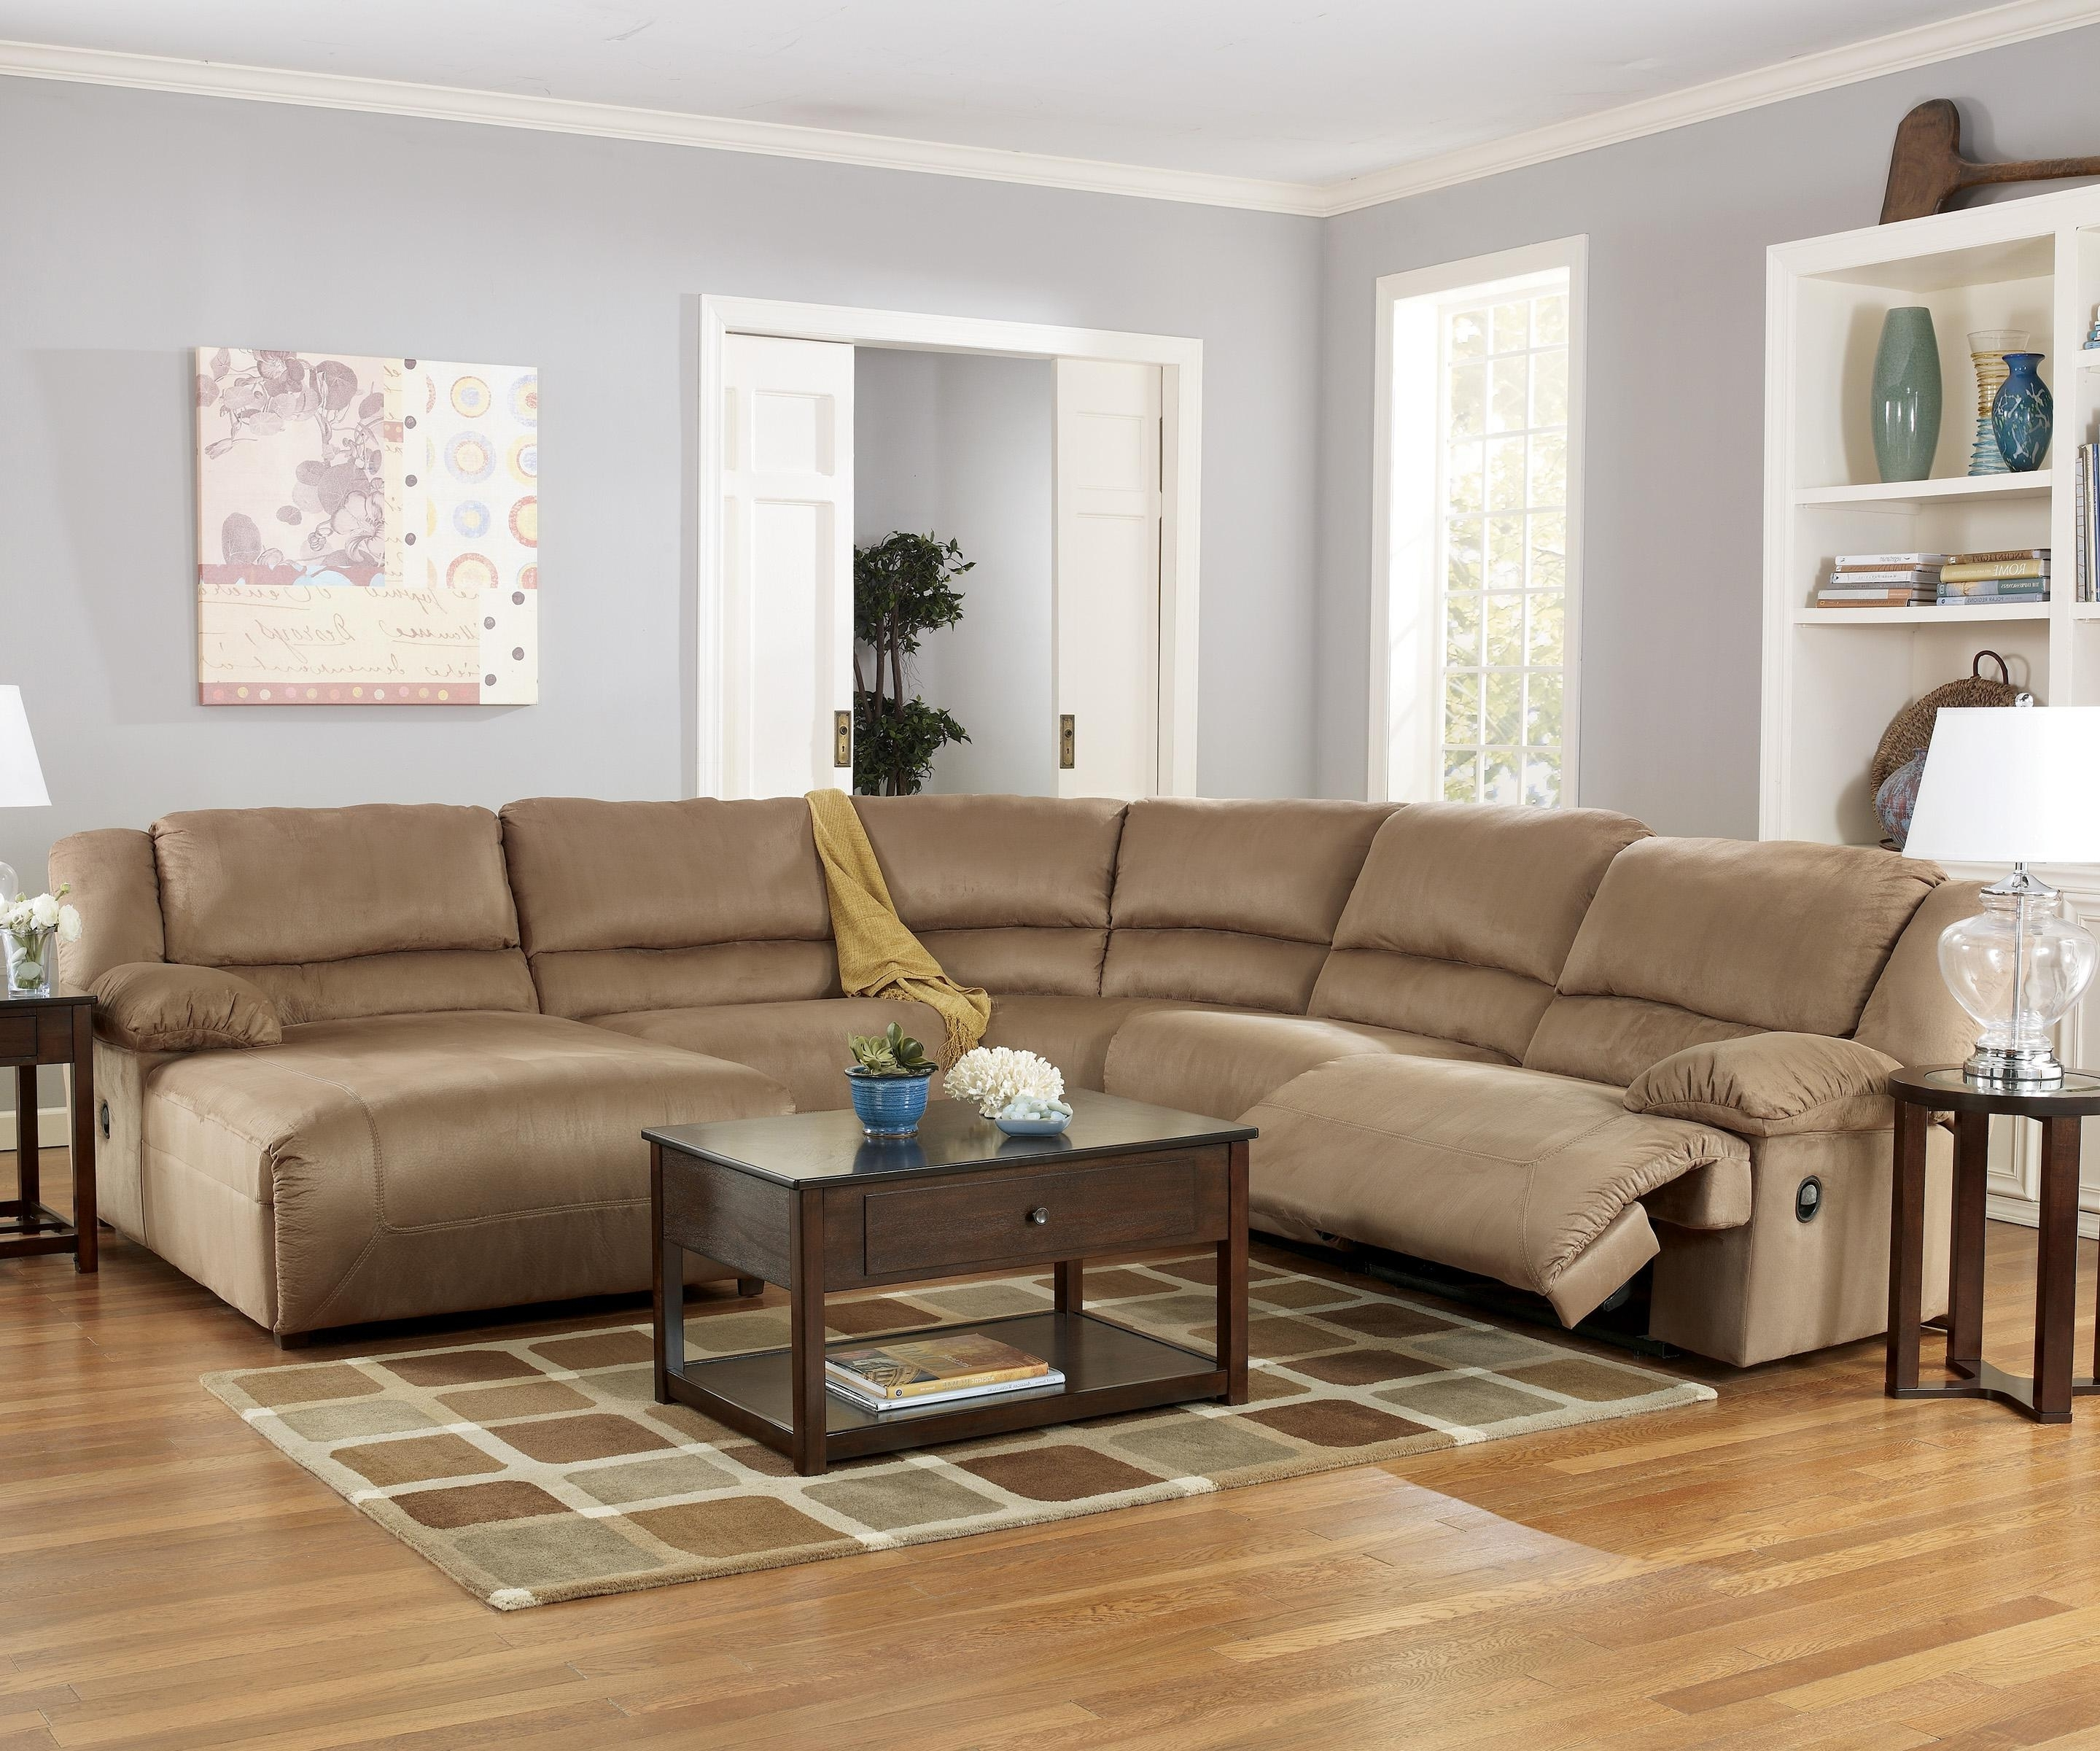 Ashley Furniture Pertaining To Widely Used El Paso Tx Sectional Sofas (View 11 of 20)